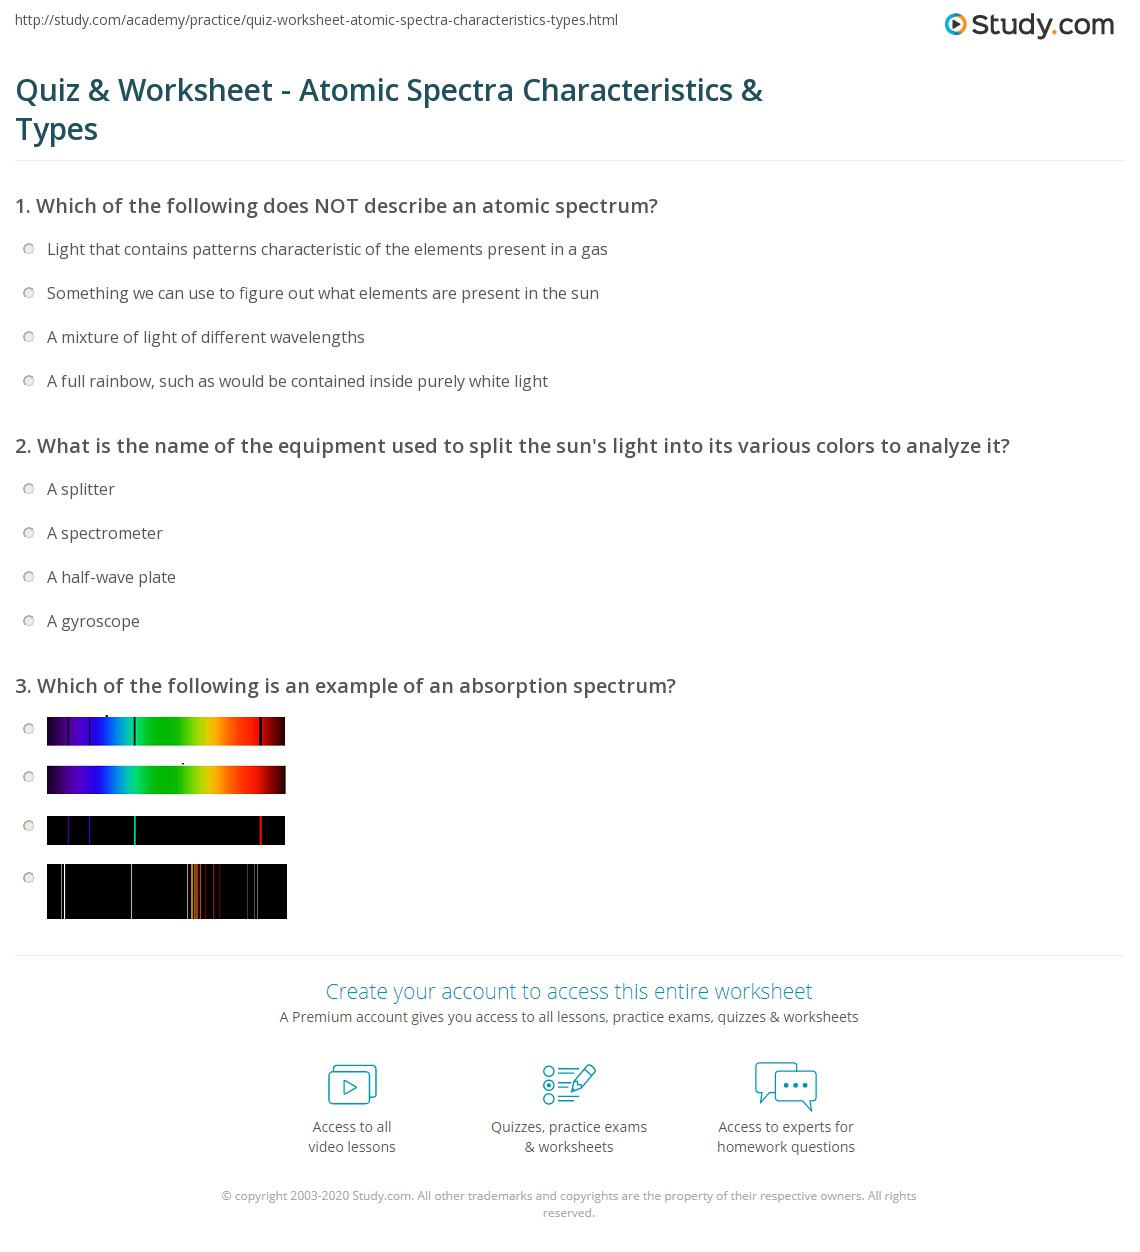 quiz worksheet atomic spectra characteristics types. Black Bedroom Furniture Sets. Home Design Ideas